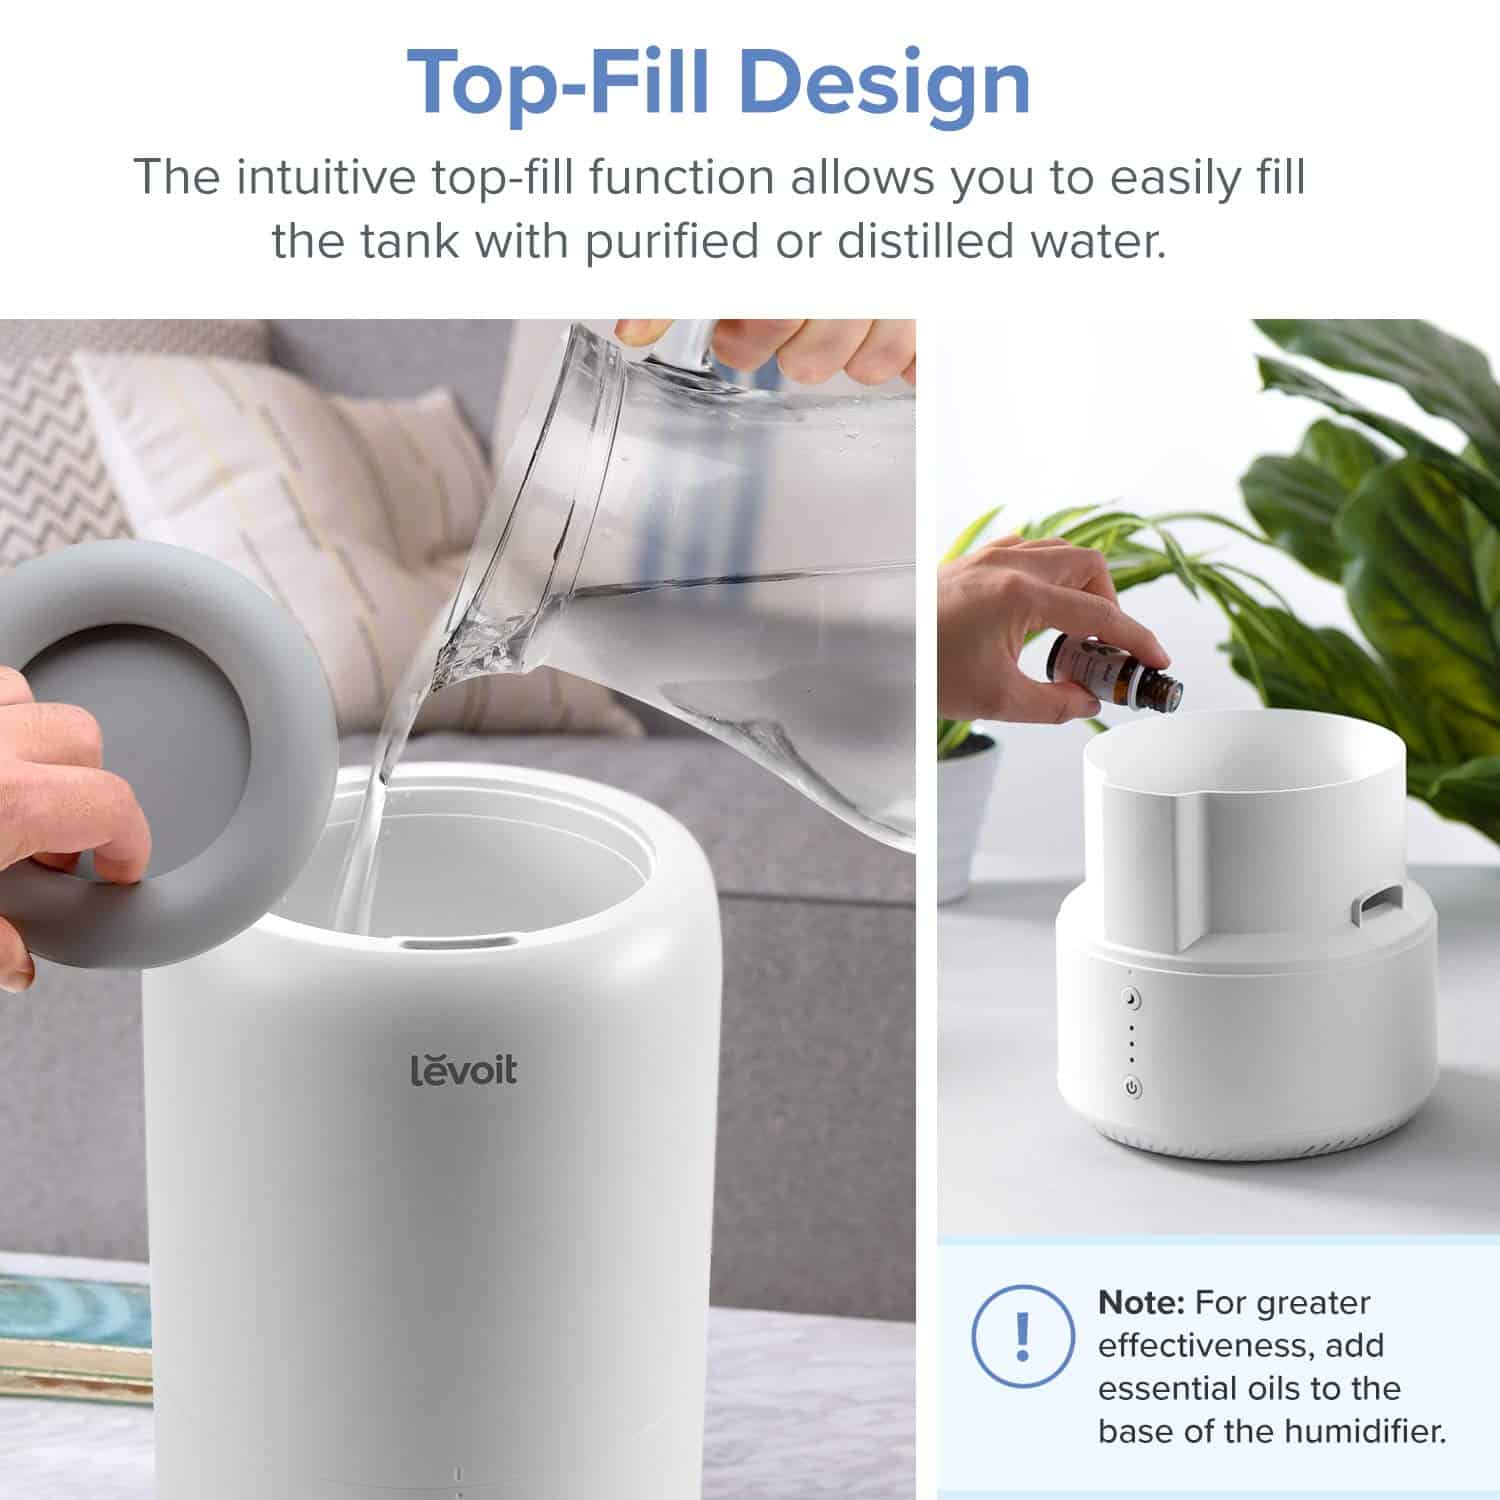 Levoit Dual 100 Ultrasonic Top-Fill Cool Mist 2-in-1 Humidifier Review